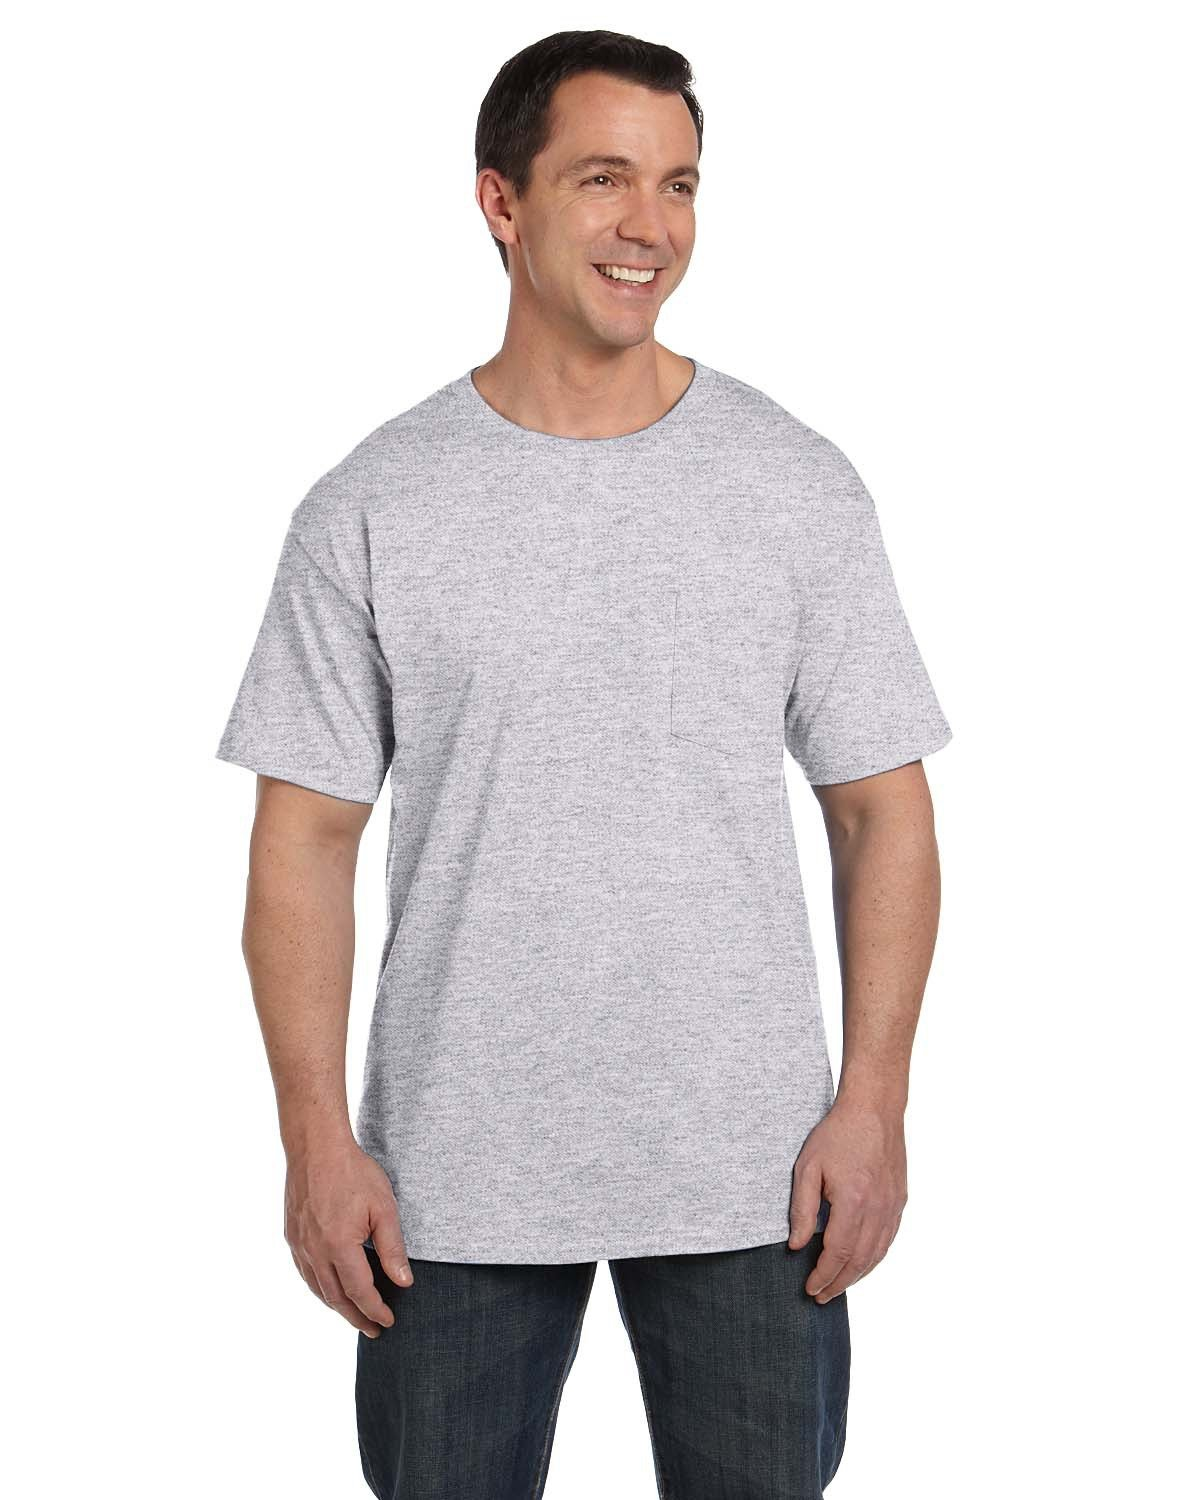 Hanes Adult Beefy-T® with Pocket ASH